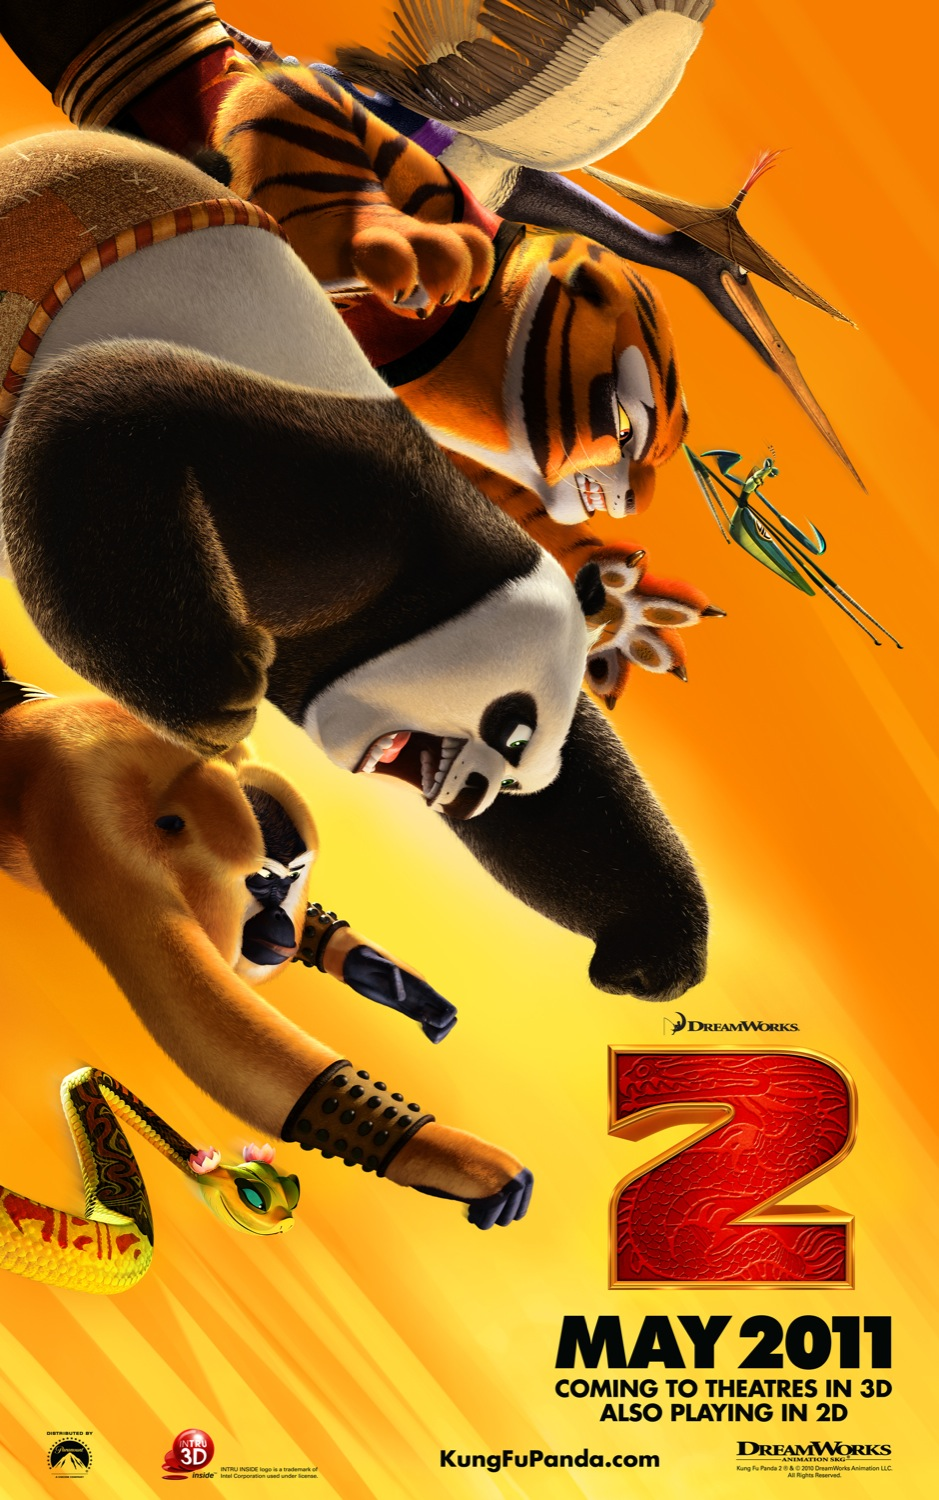 Free 3d Desktop Wallpapers Backgrounds Kung Fu Panda 2 3d Hd Poster Wallpapers Cartoon Wallpapers